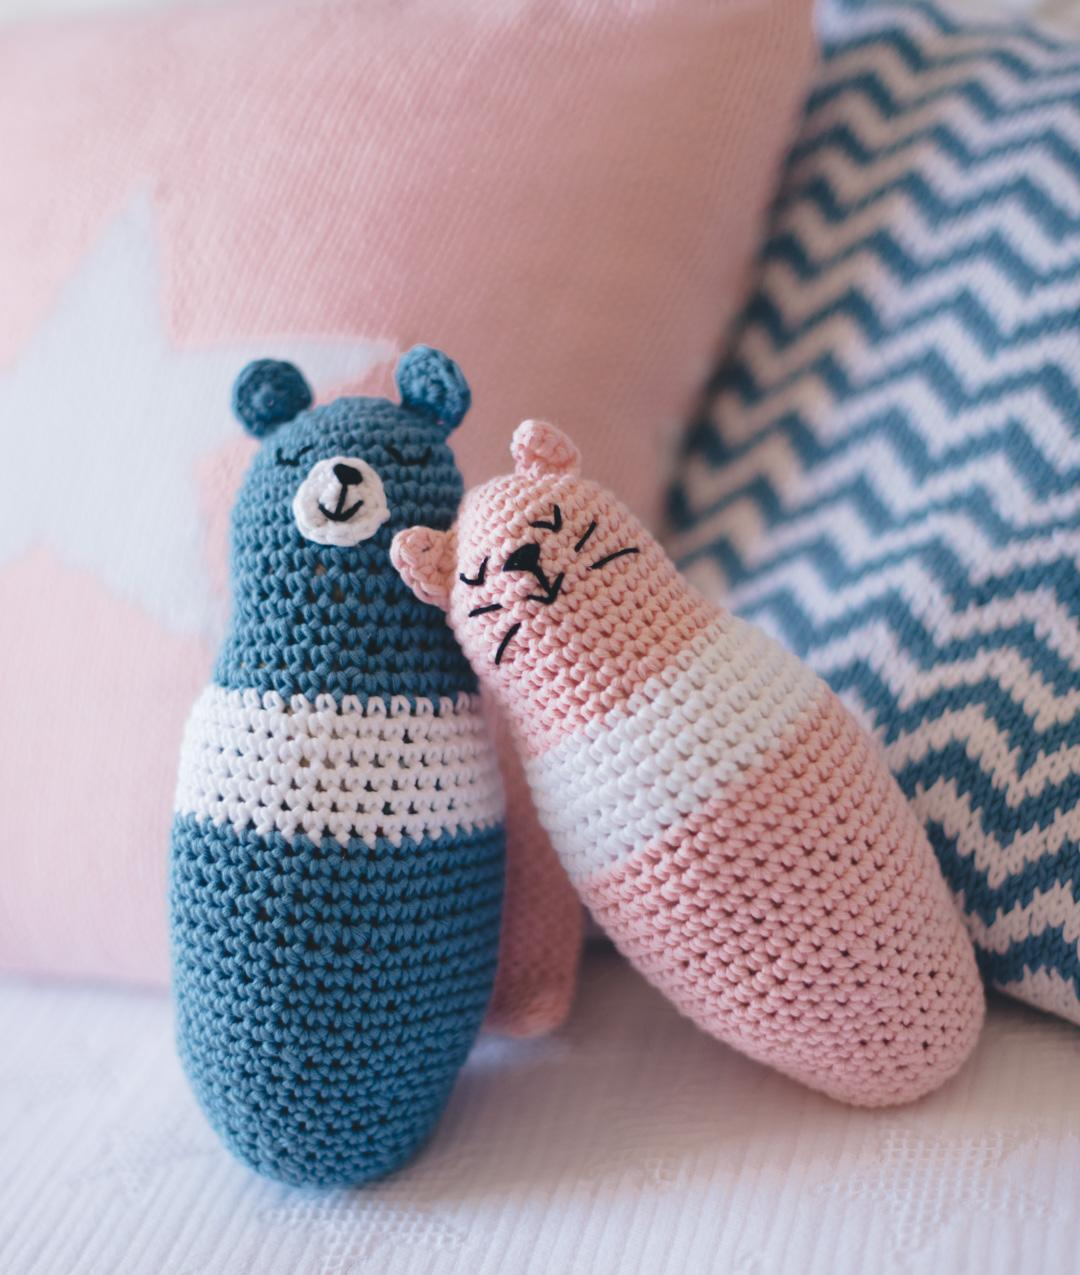 Homeware - Cotton - TEDDY & KITTY AMIGURUMIS - 1